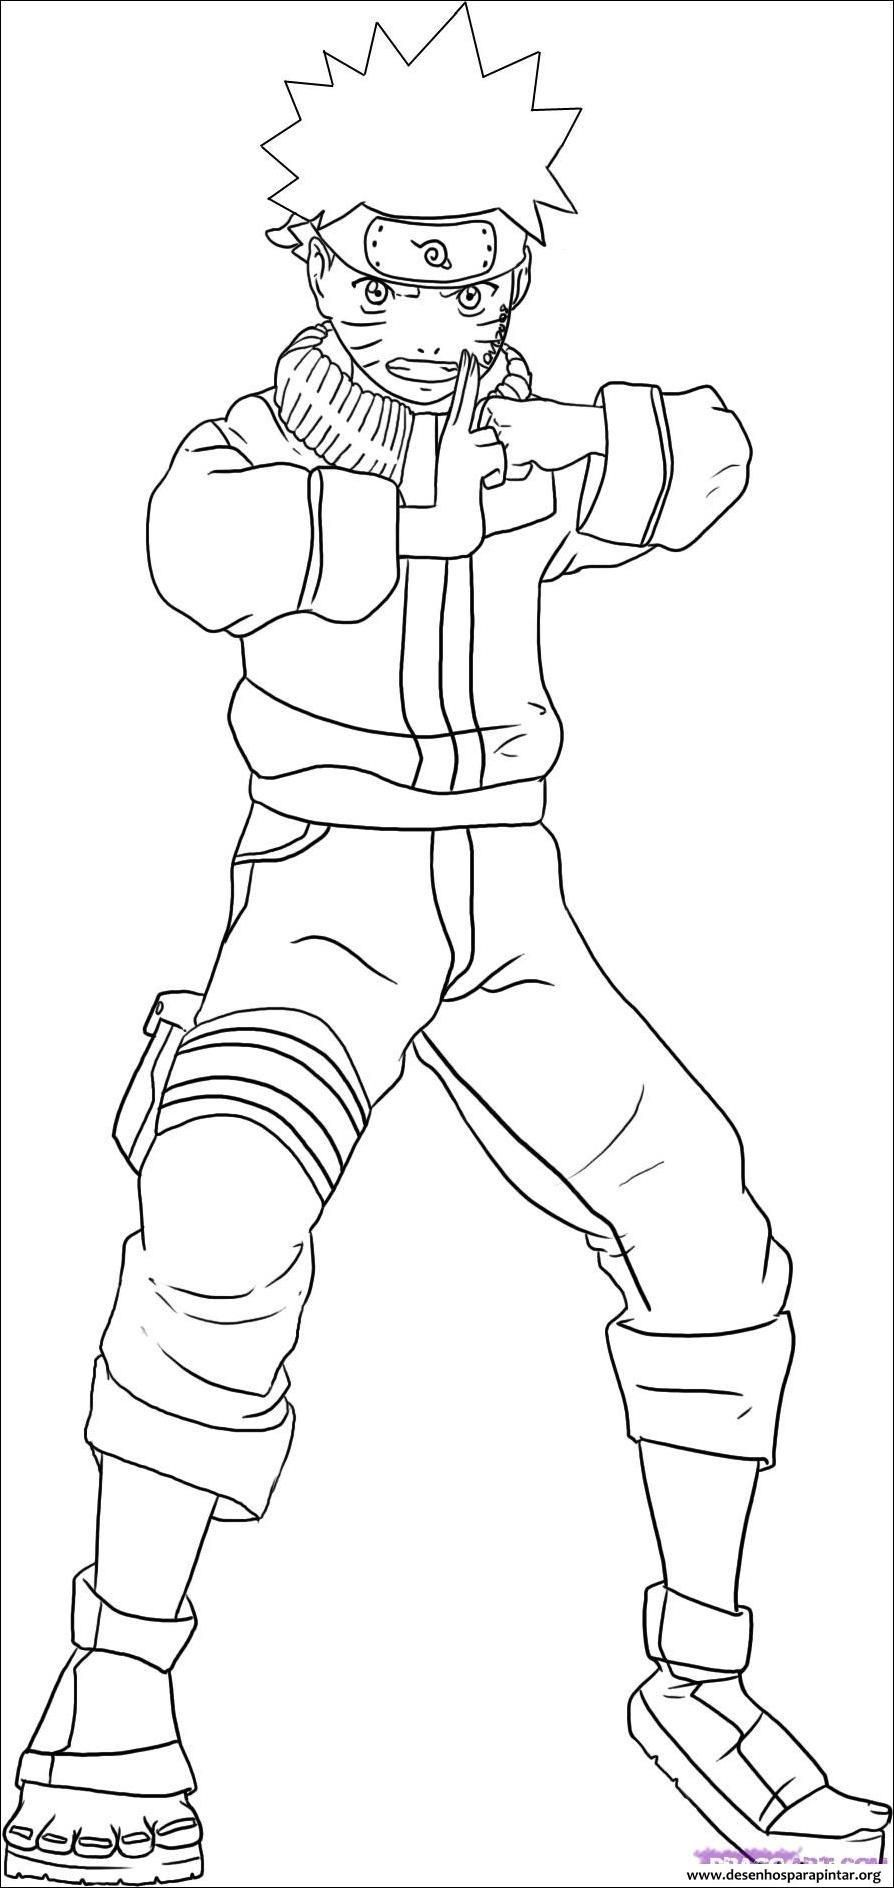 Naruto desenhos colorir pintar imprimir 04 printable coloring pages coloring pages for kids cartoon coloring pages